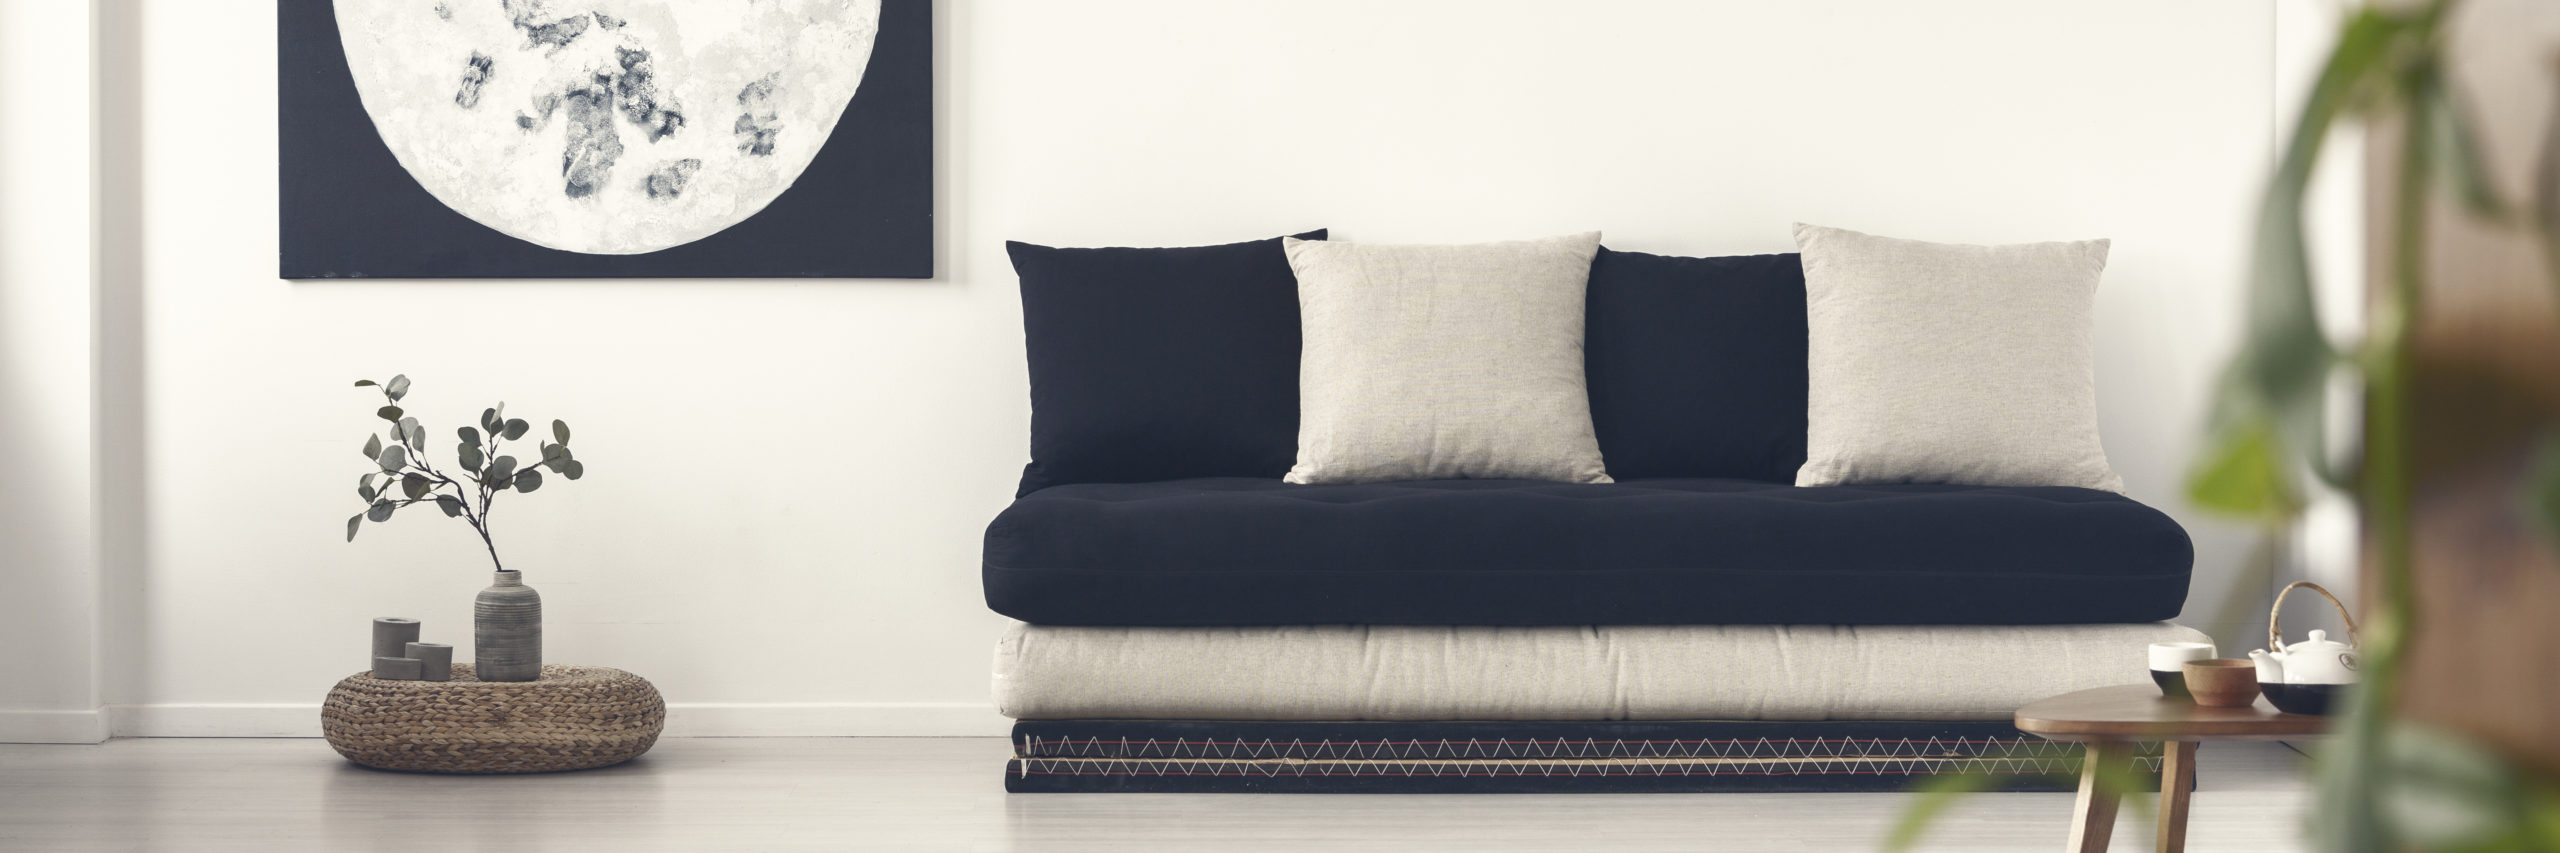 Plant on pouf next to black sofa with pillows in white living room interior with moon poster. Real photo